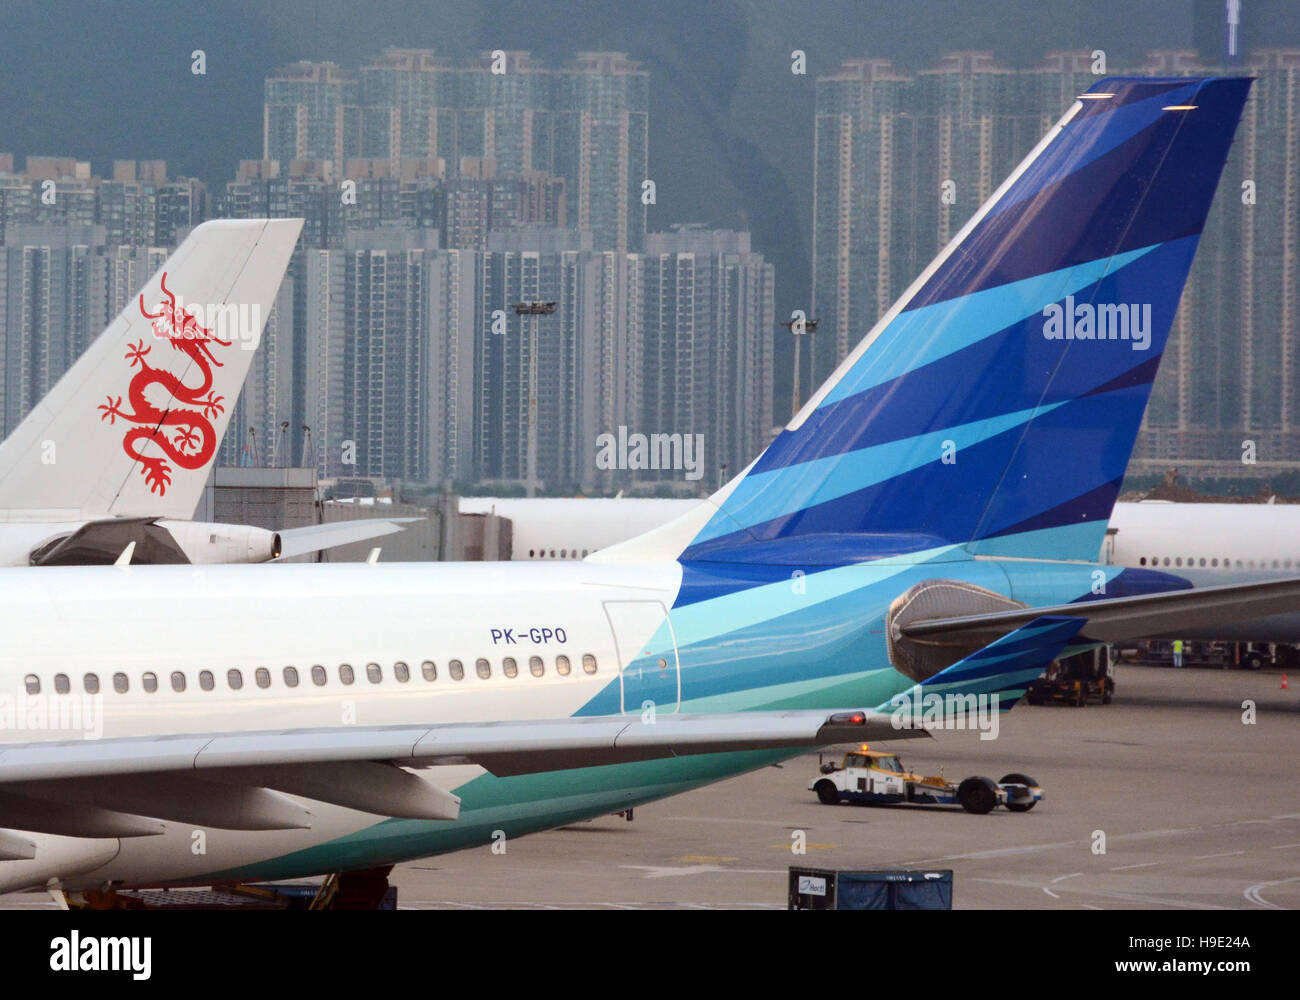 Garuda Indonesia Dragonair planes Hong Kong international airport - Stock Image